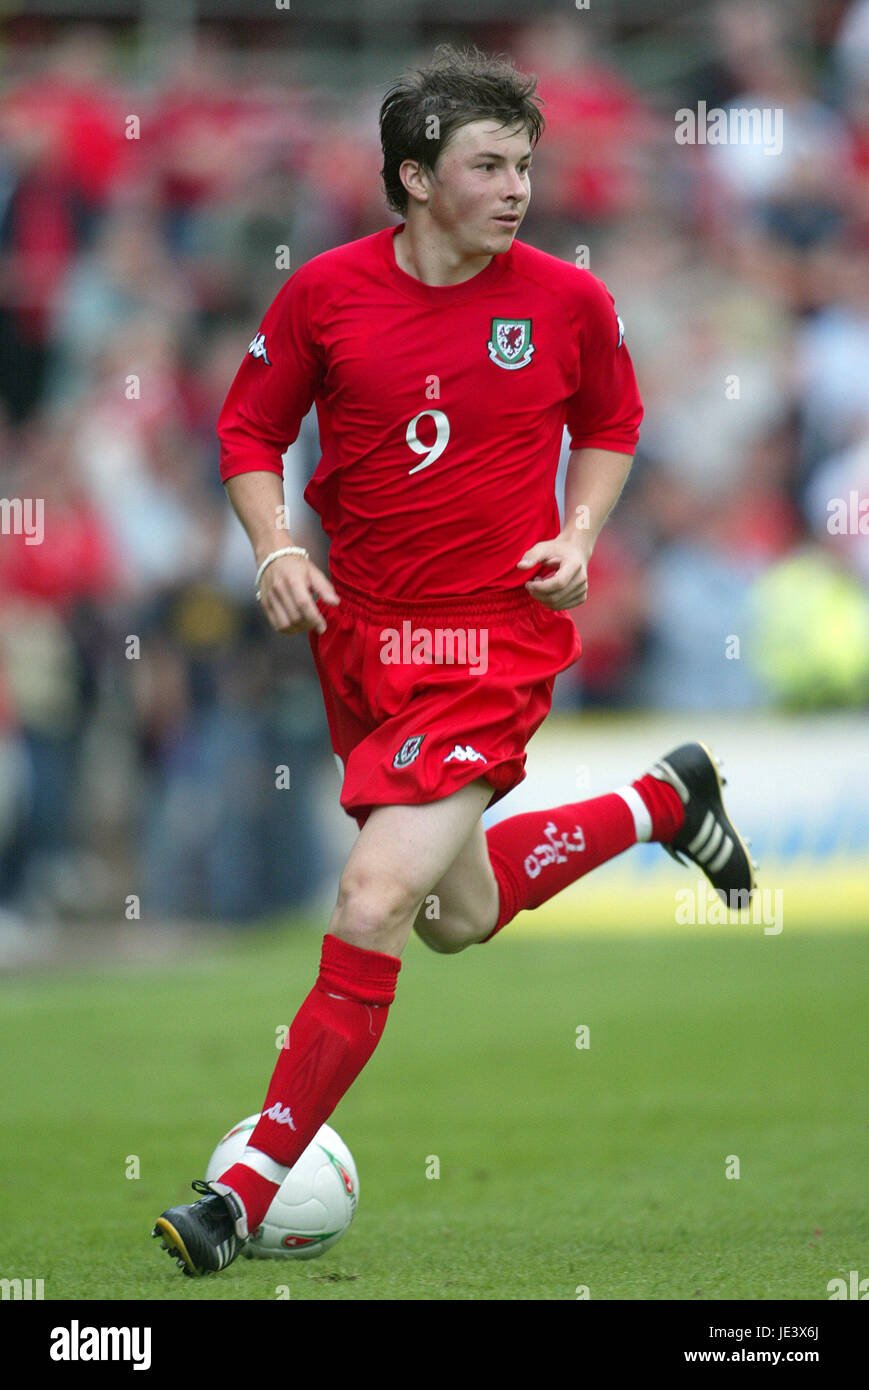 JOHN OSTER WALES & SUNDERLAND FC RACECOURSE FROUND WREXHAM WALES 30 May 2004 - Stock Image